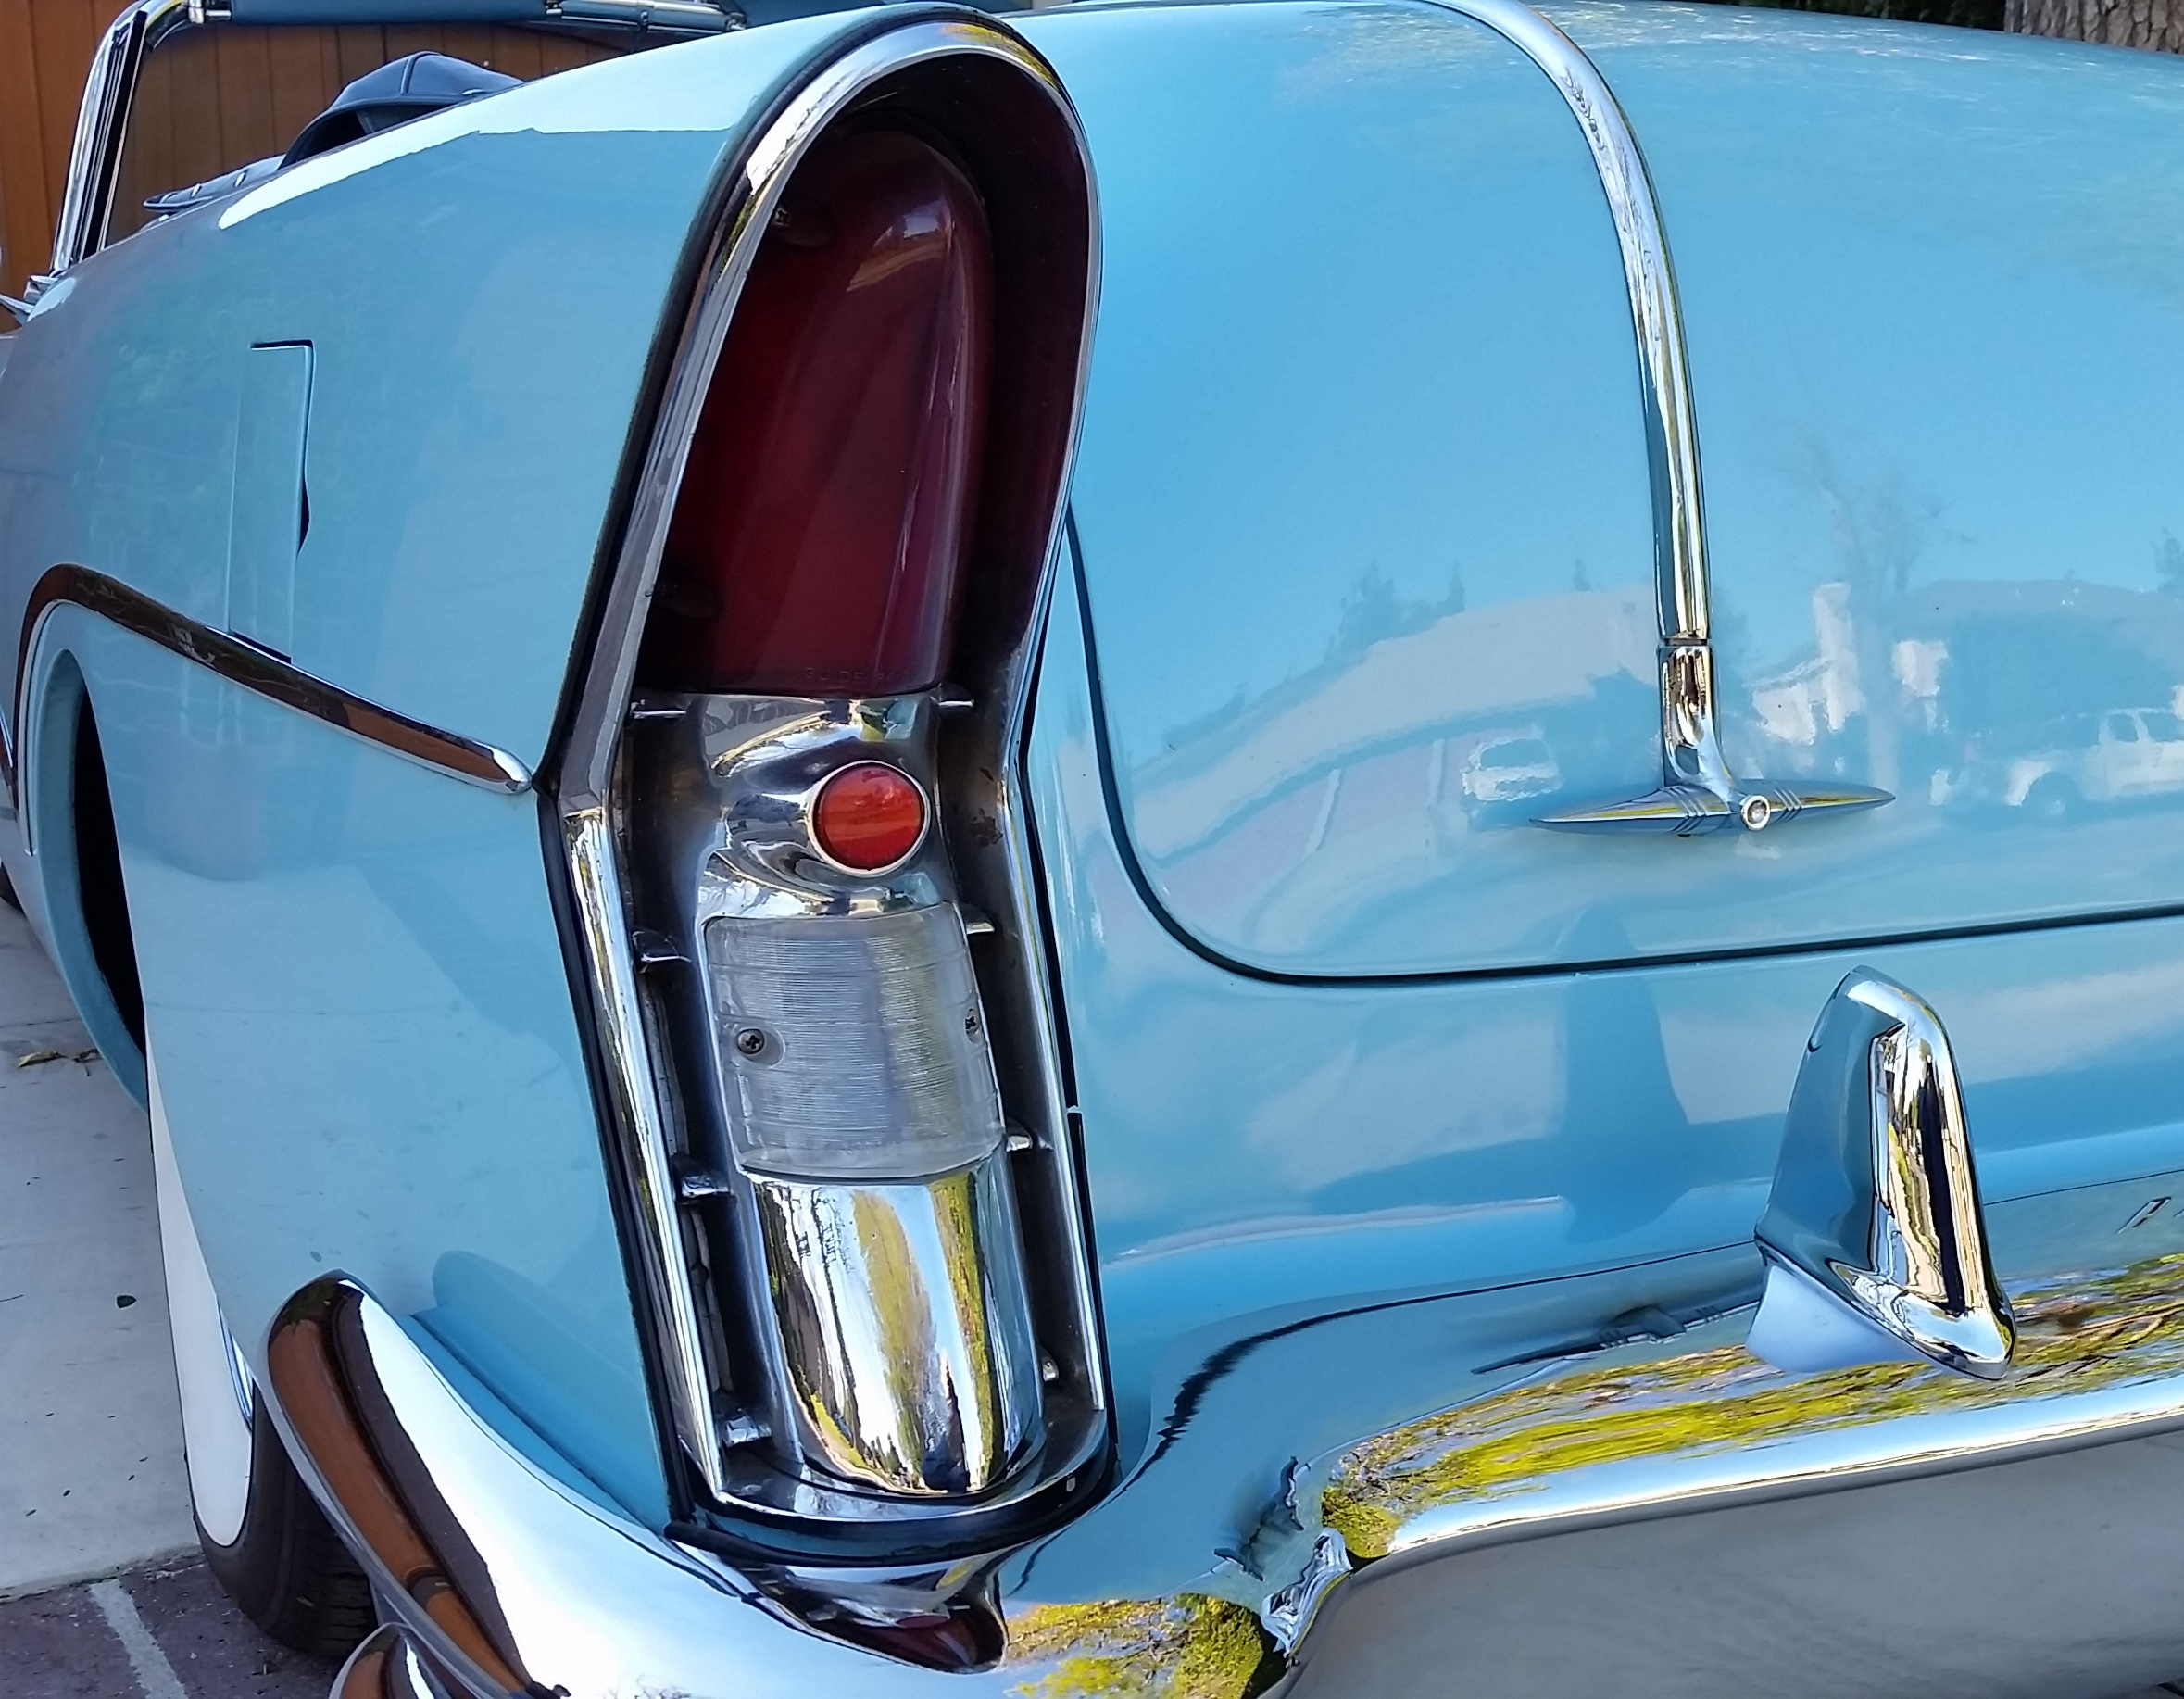 1956 BUICK ROADMASTER CONVERTIBLE FOR SALE - Cars For Sale - Antique ...